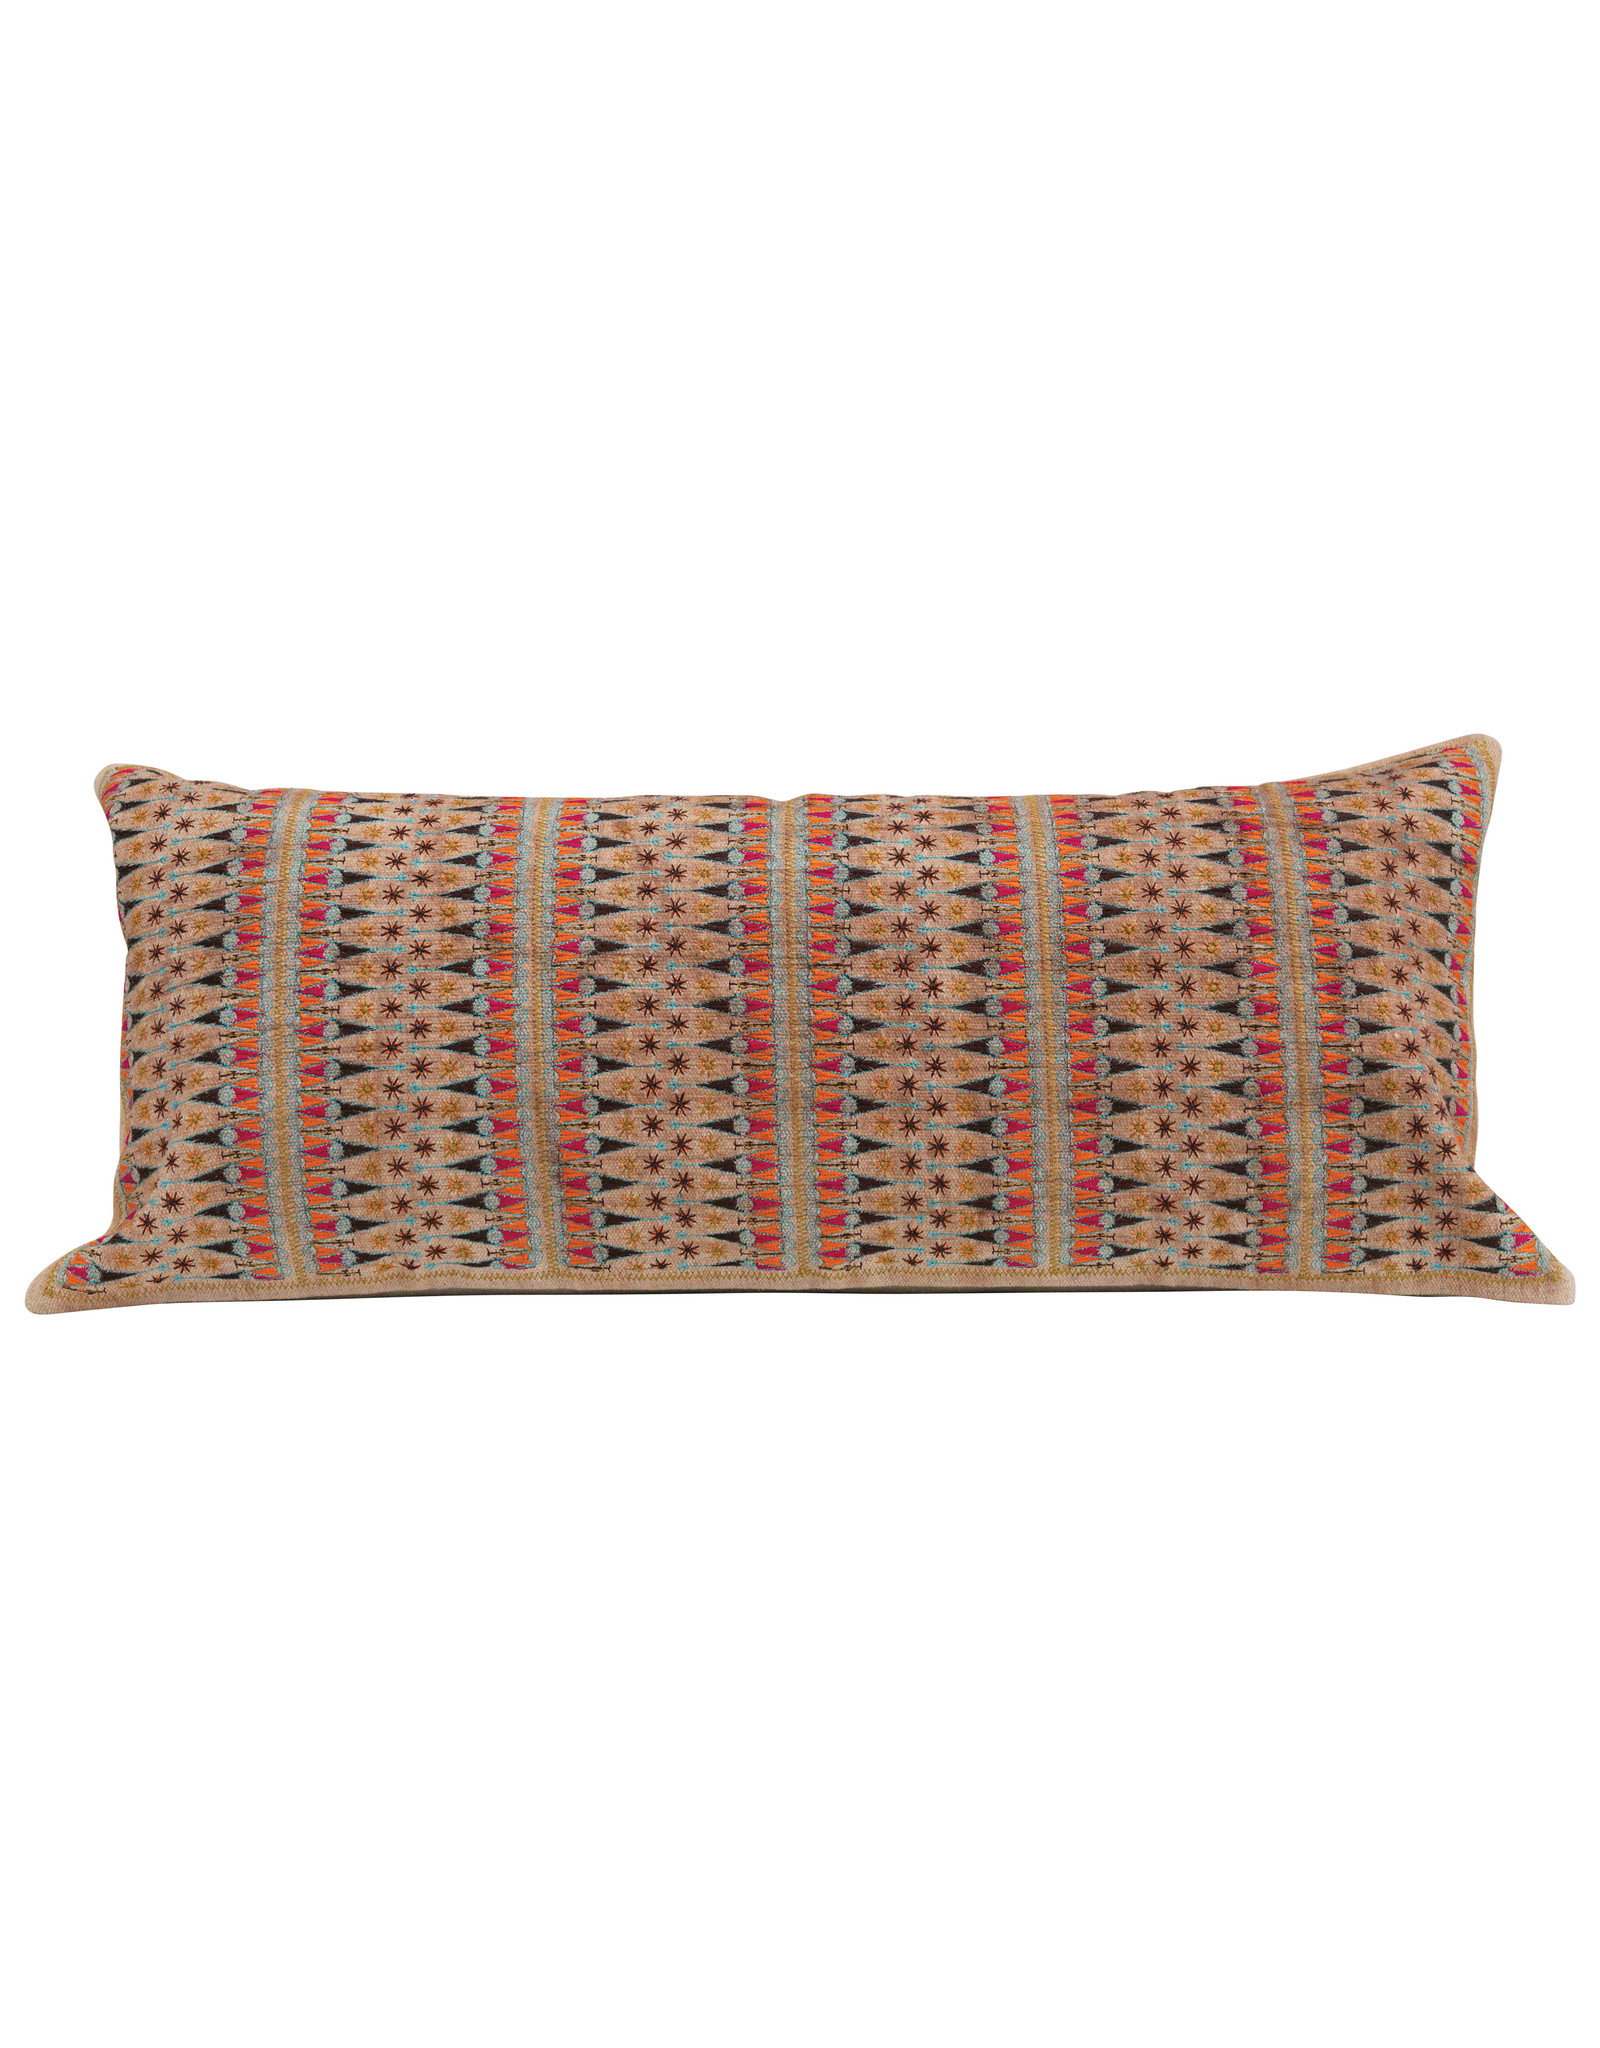 Rectangle Embroidered Cotton Chambray Lumbar Pillow